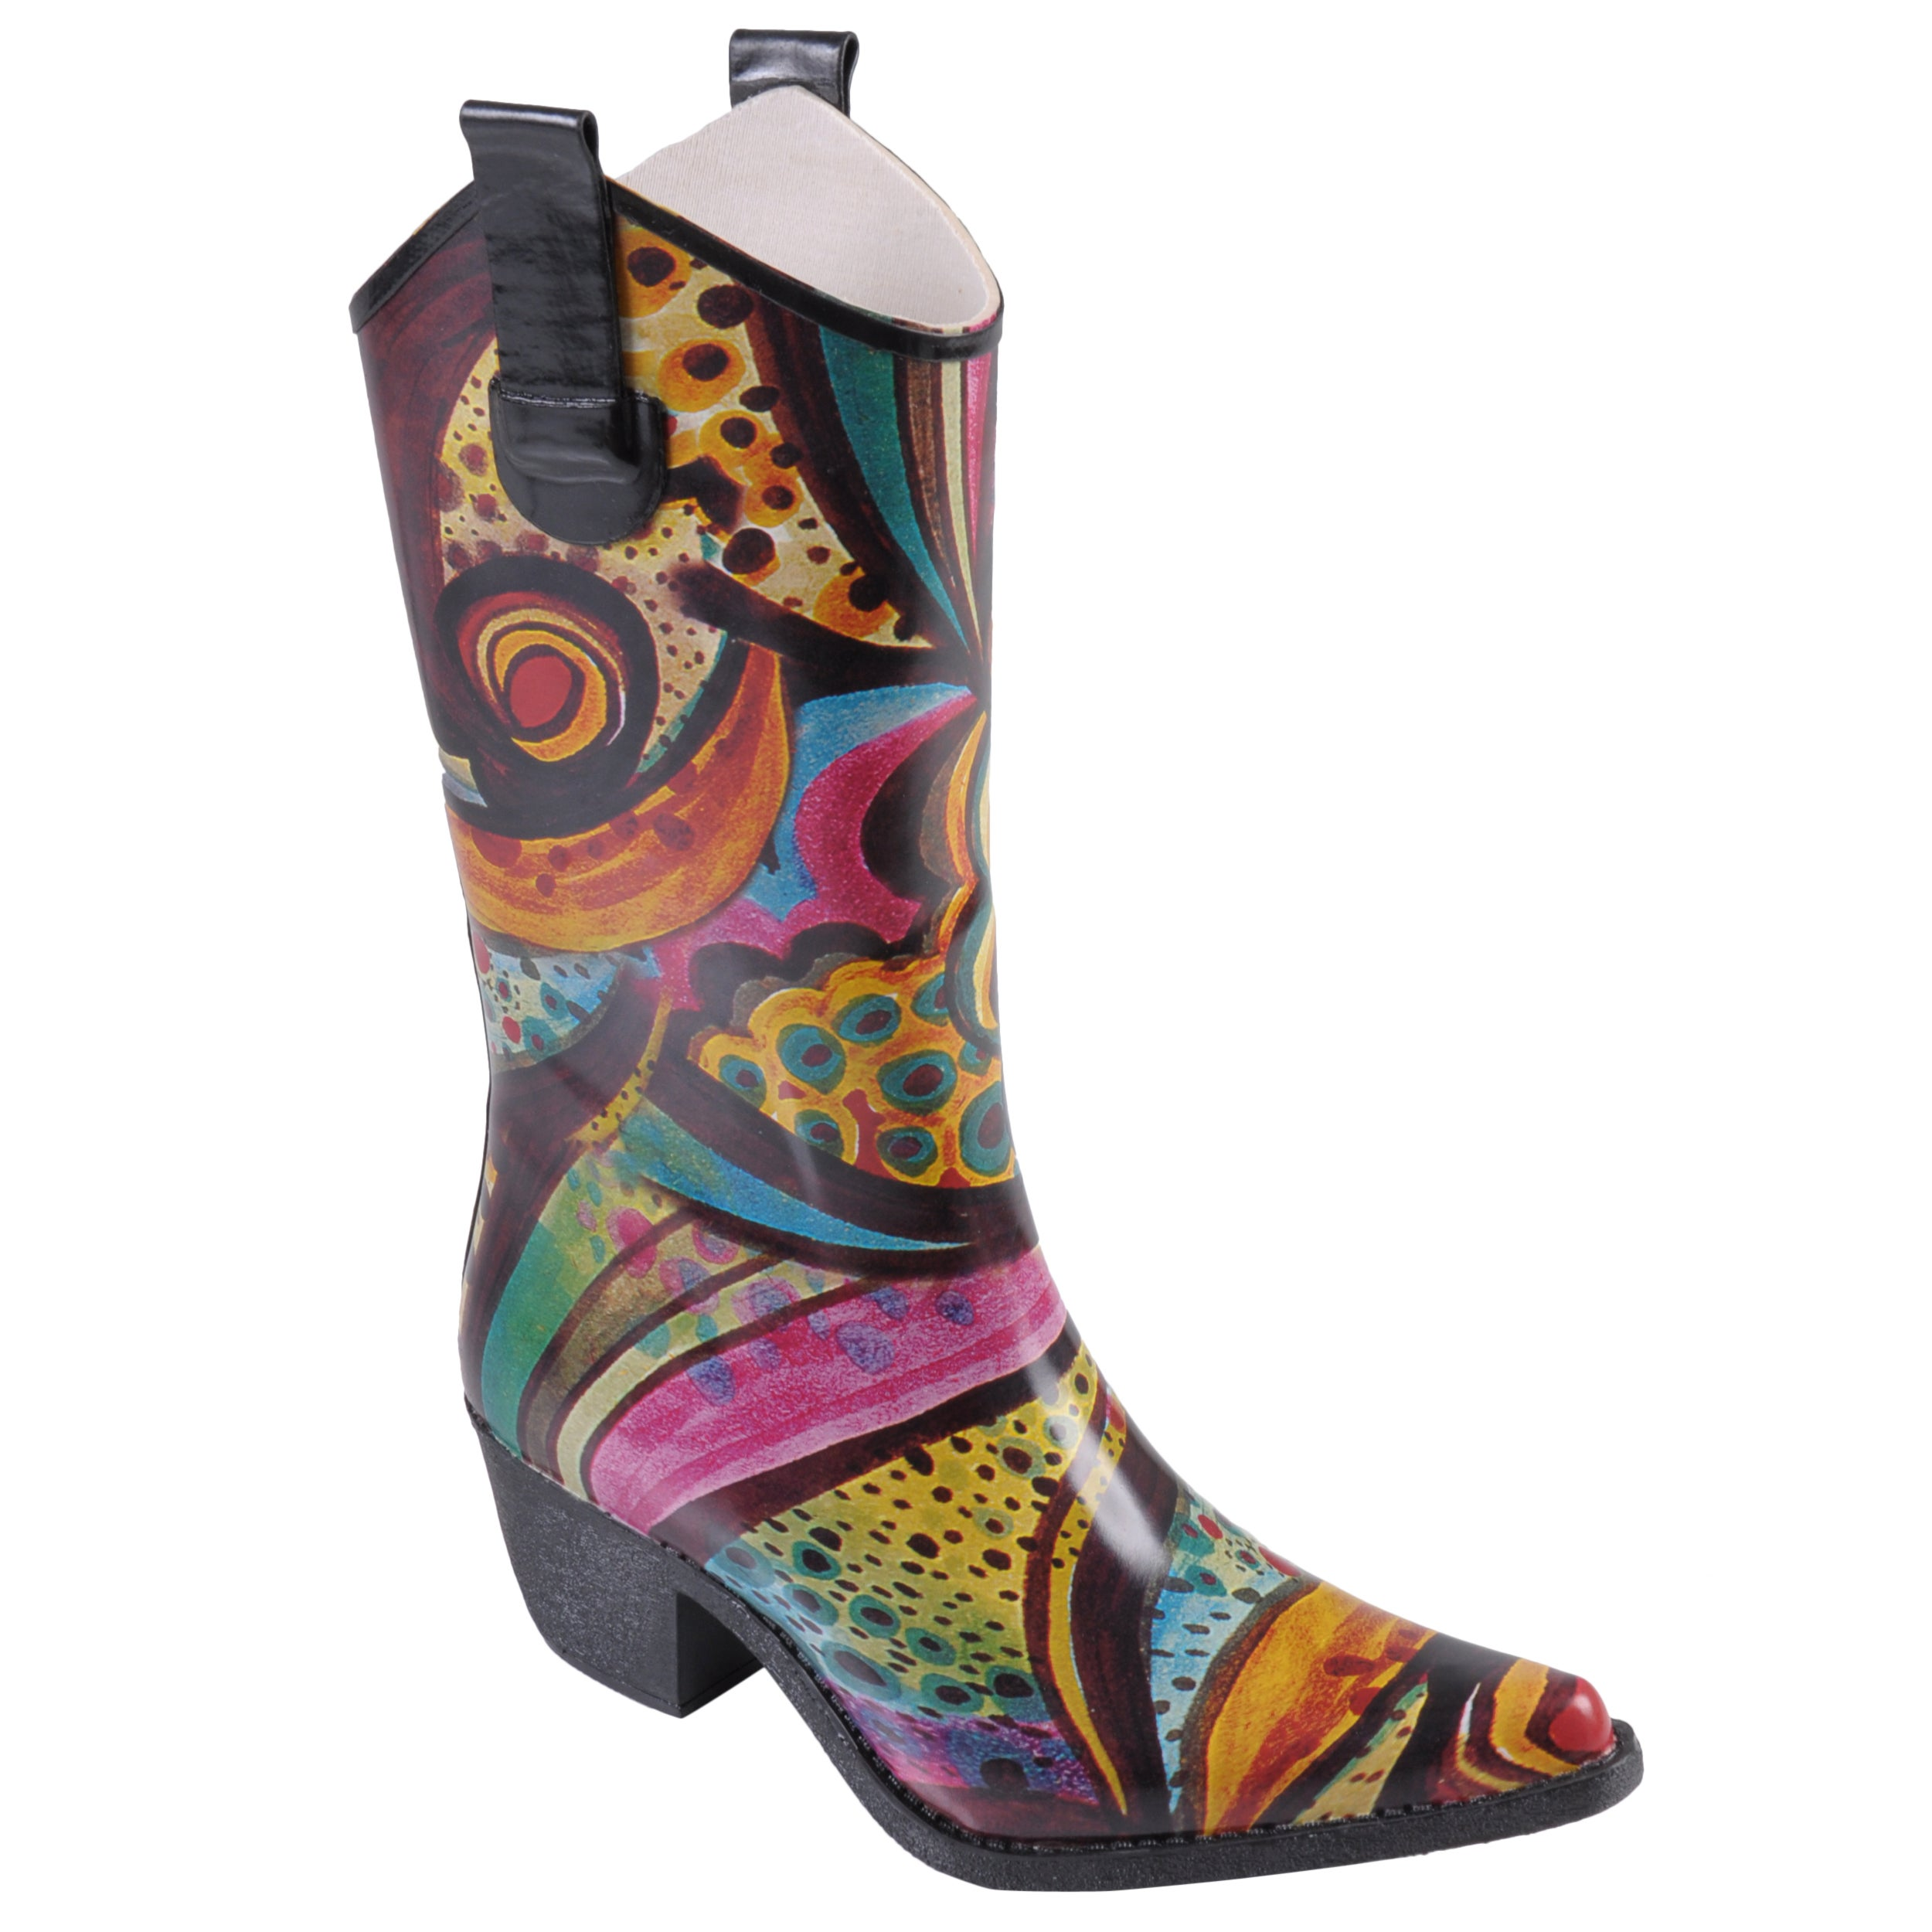 Journee Collection Women's Cowboy Style Fashion Rainboots - Thumbnail 0